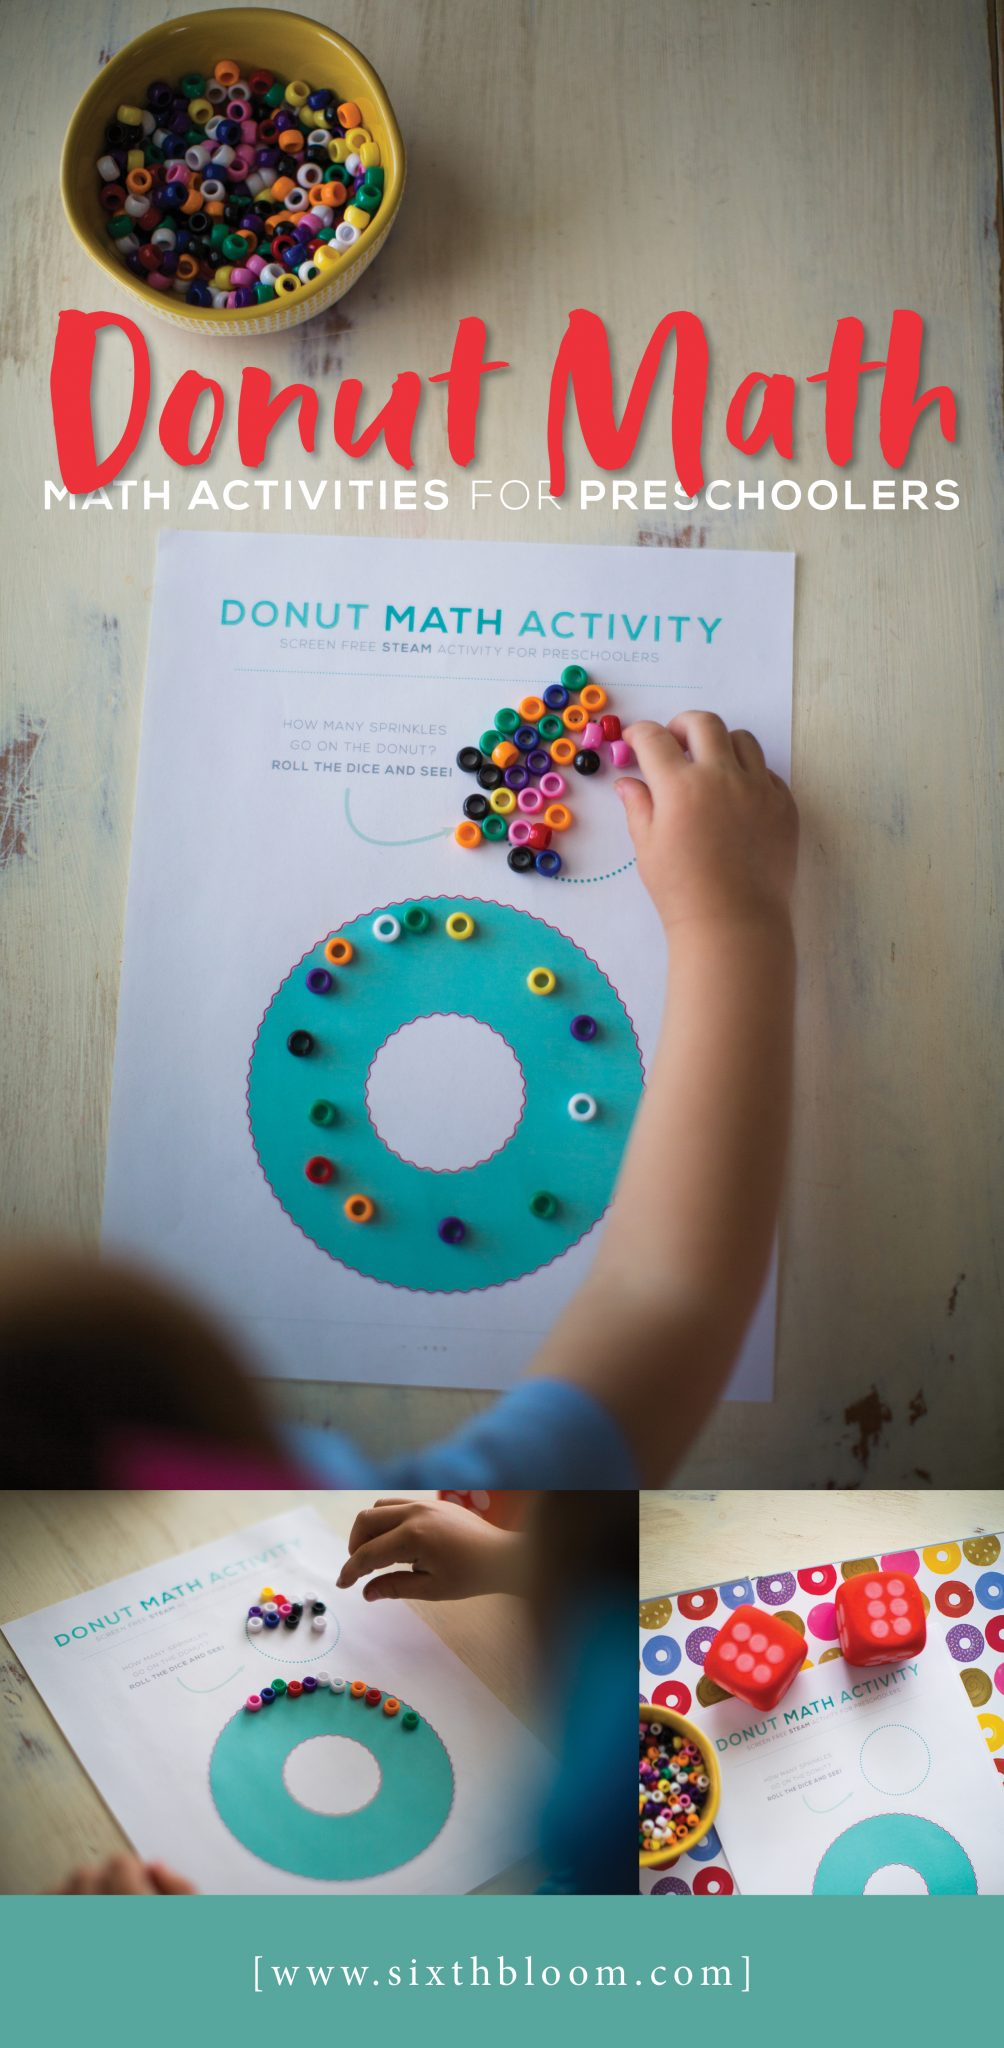 Math Activities for Preschoolers